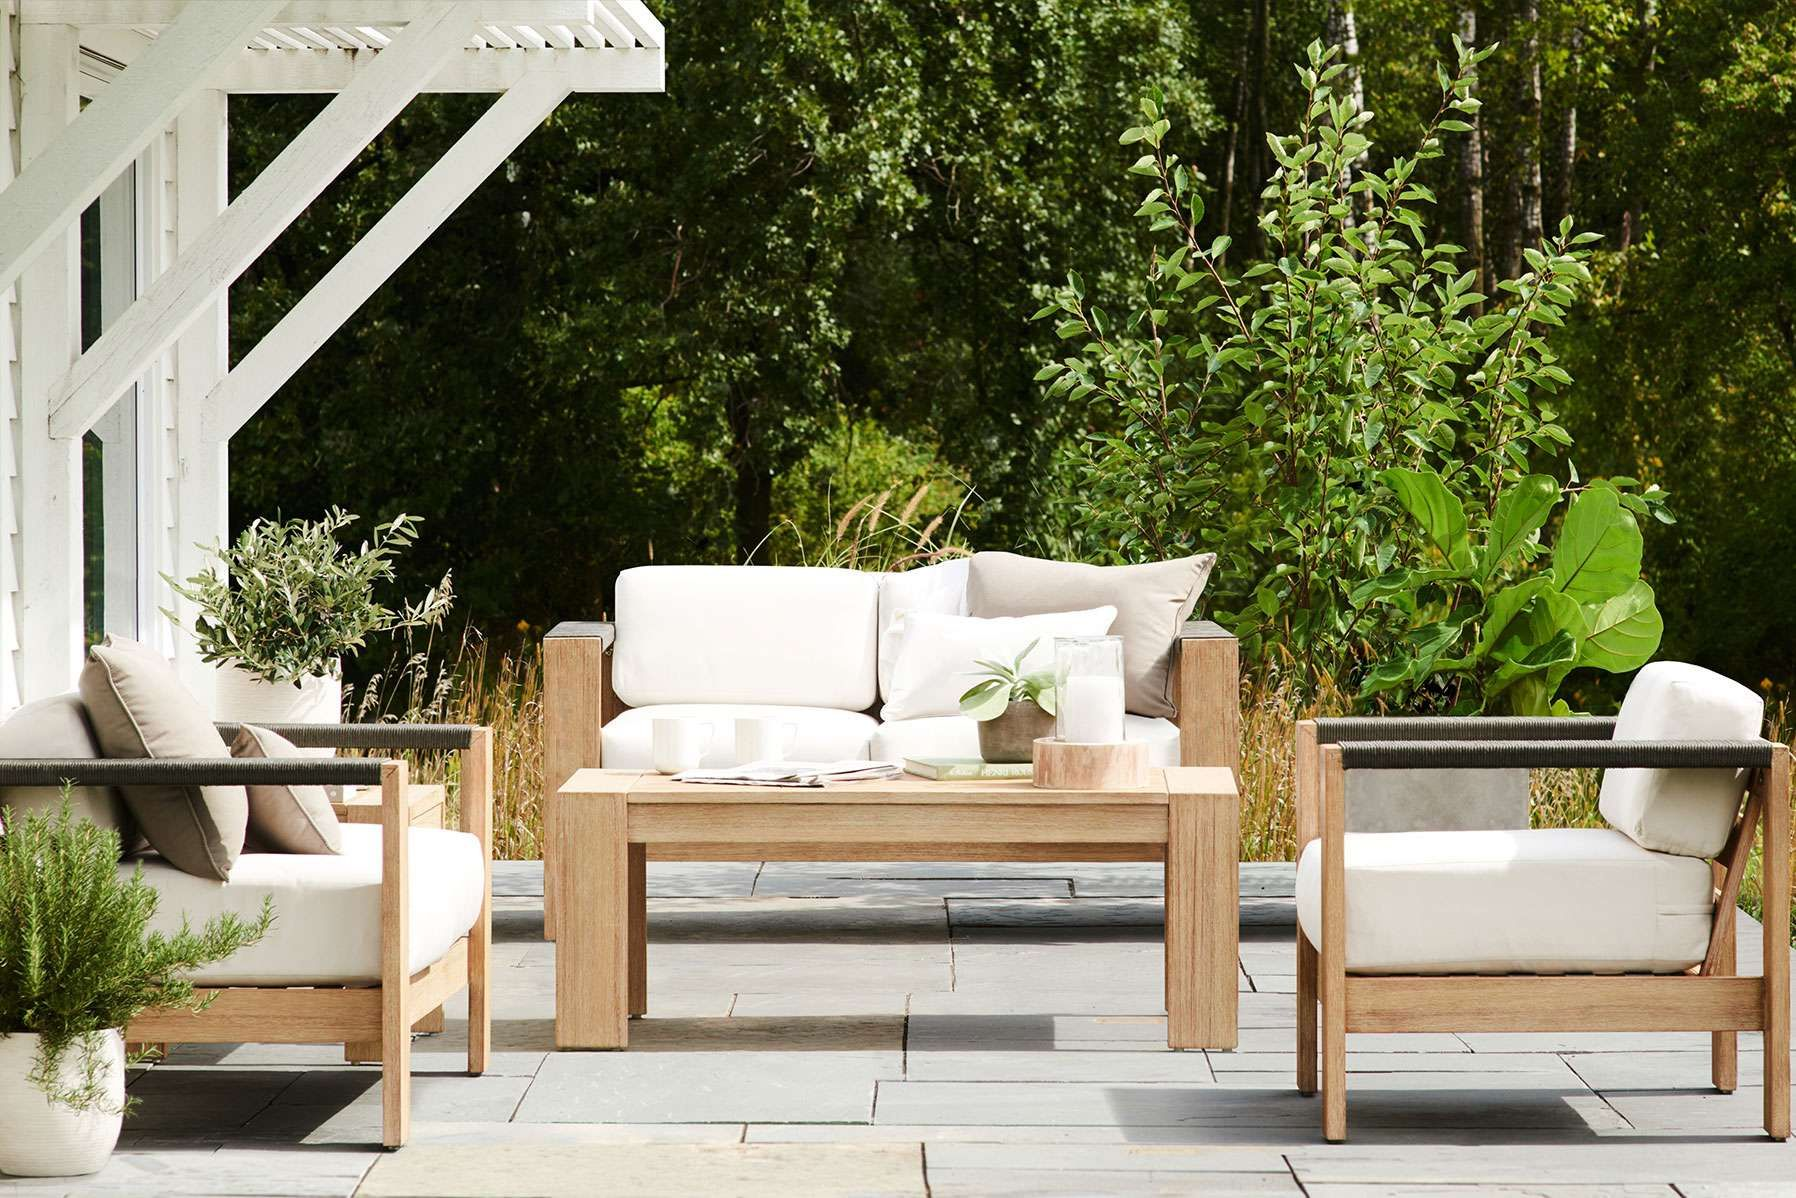 Gentil Asheville Patio Furniture   Youu0027re Looking To Buy Furniture For Your Own  Patio So You Could Have A Pleasant Spot To Spend Tha